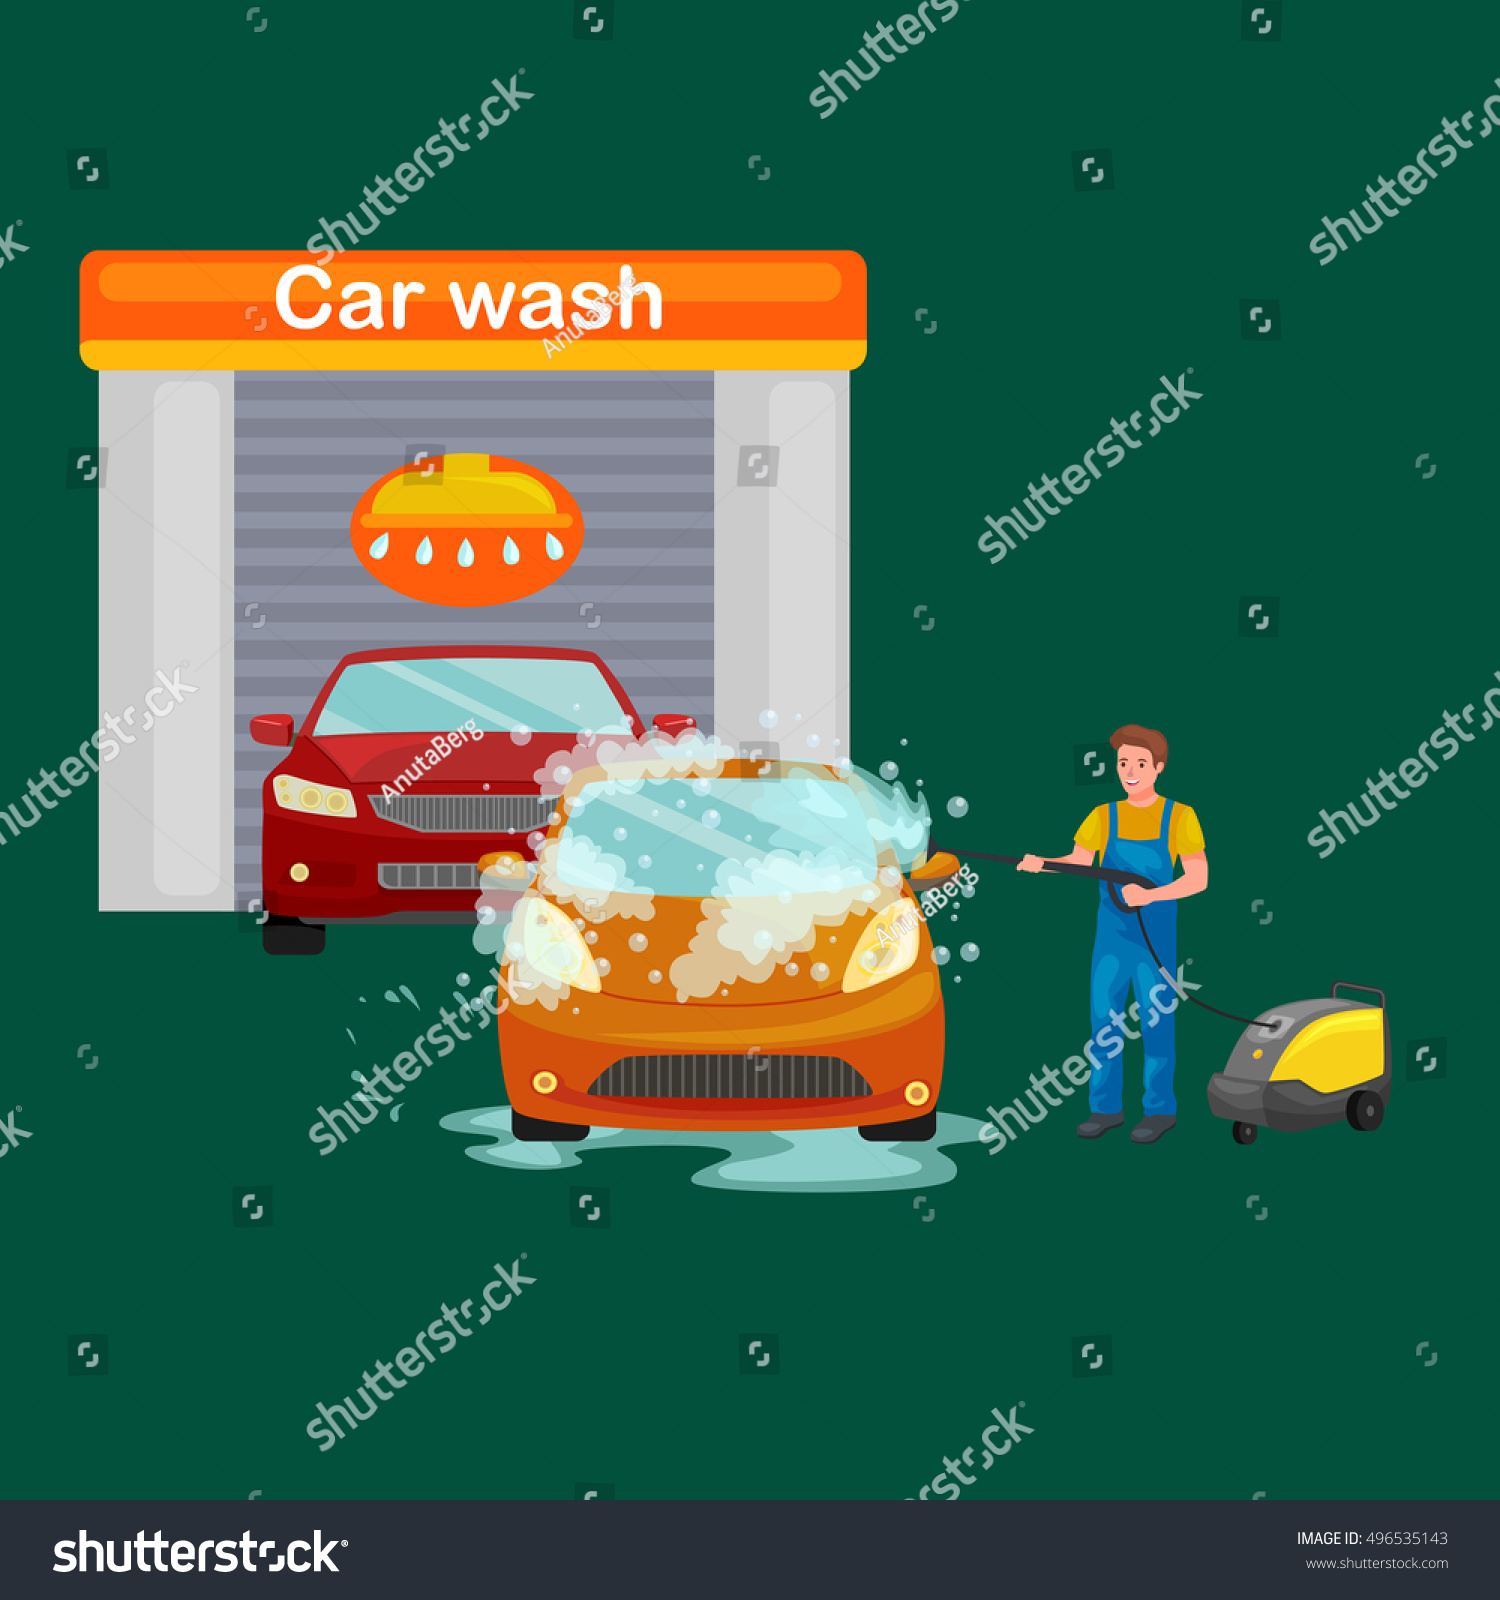 car wash services auto cleaning water stock vector 496535143 shutterstock. Black Bedroom Furniture Sets. Home Design Ideas